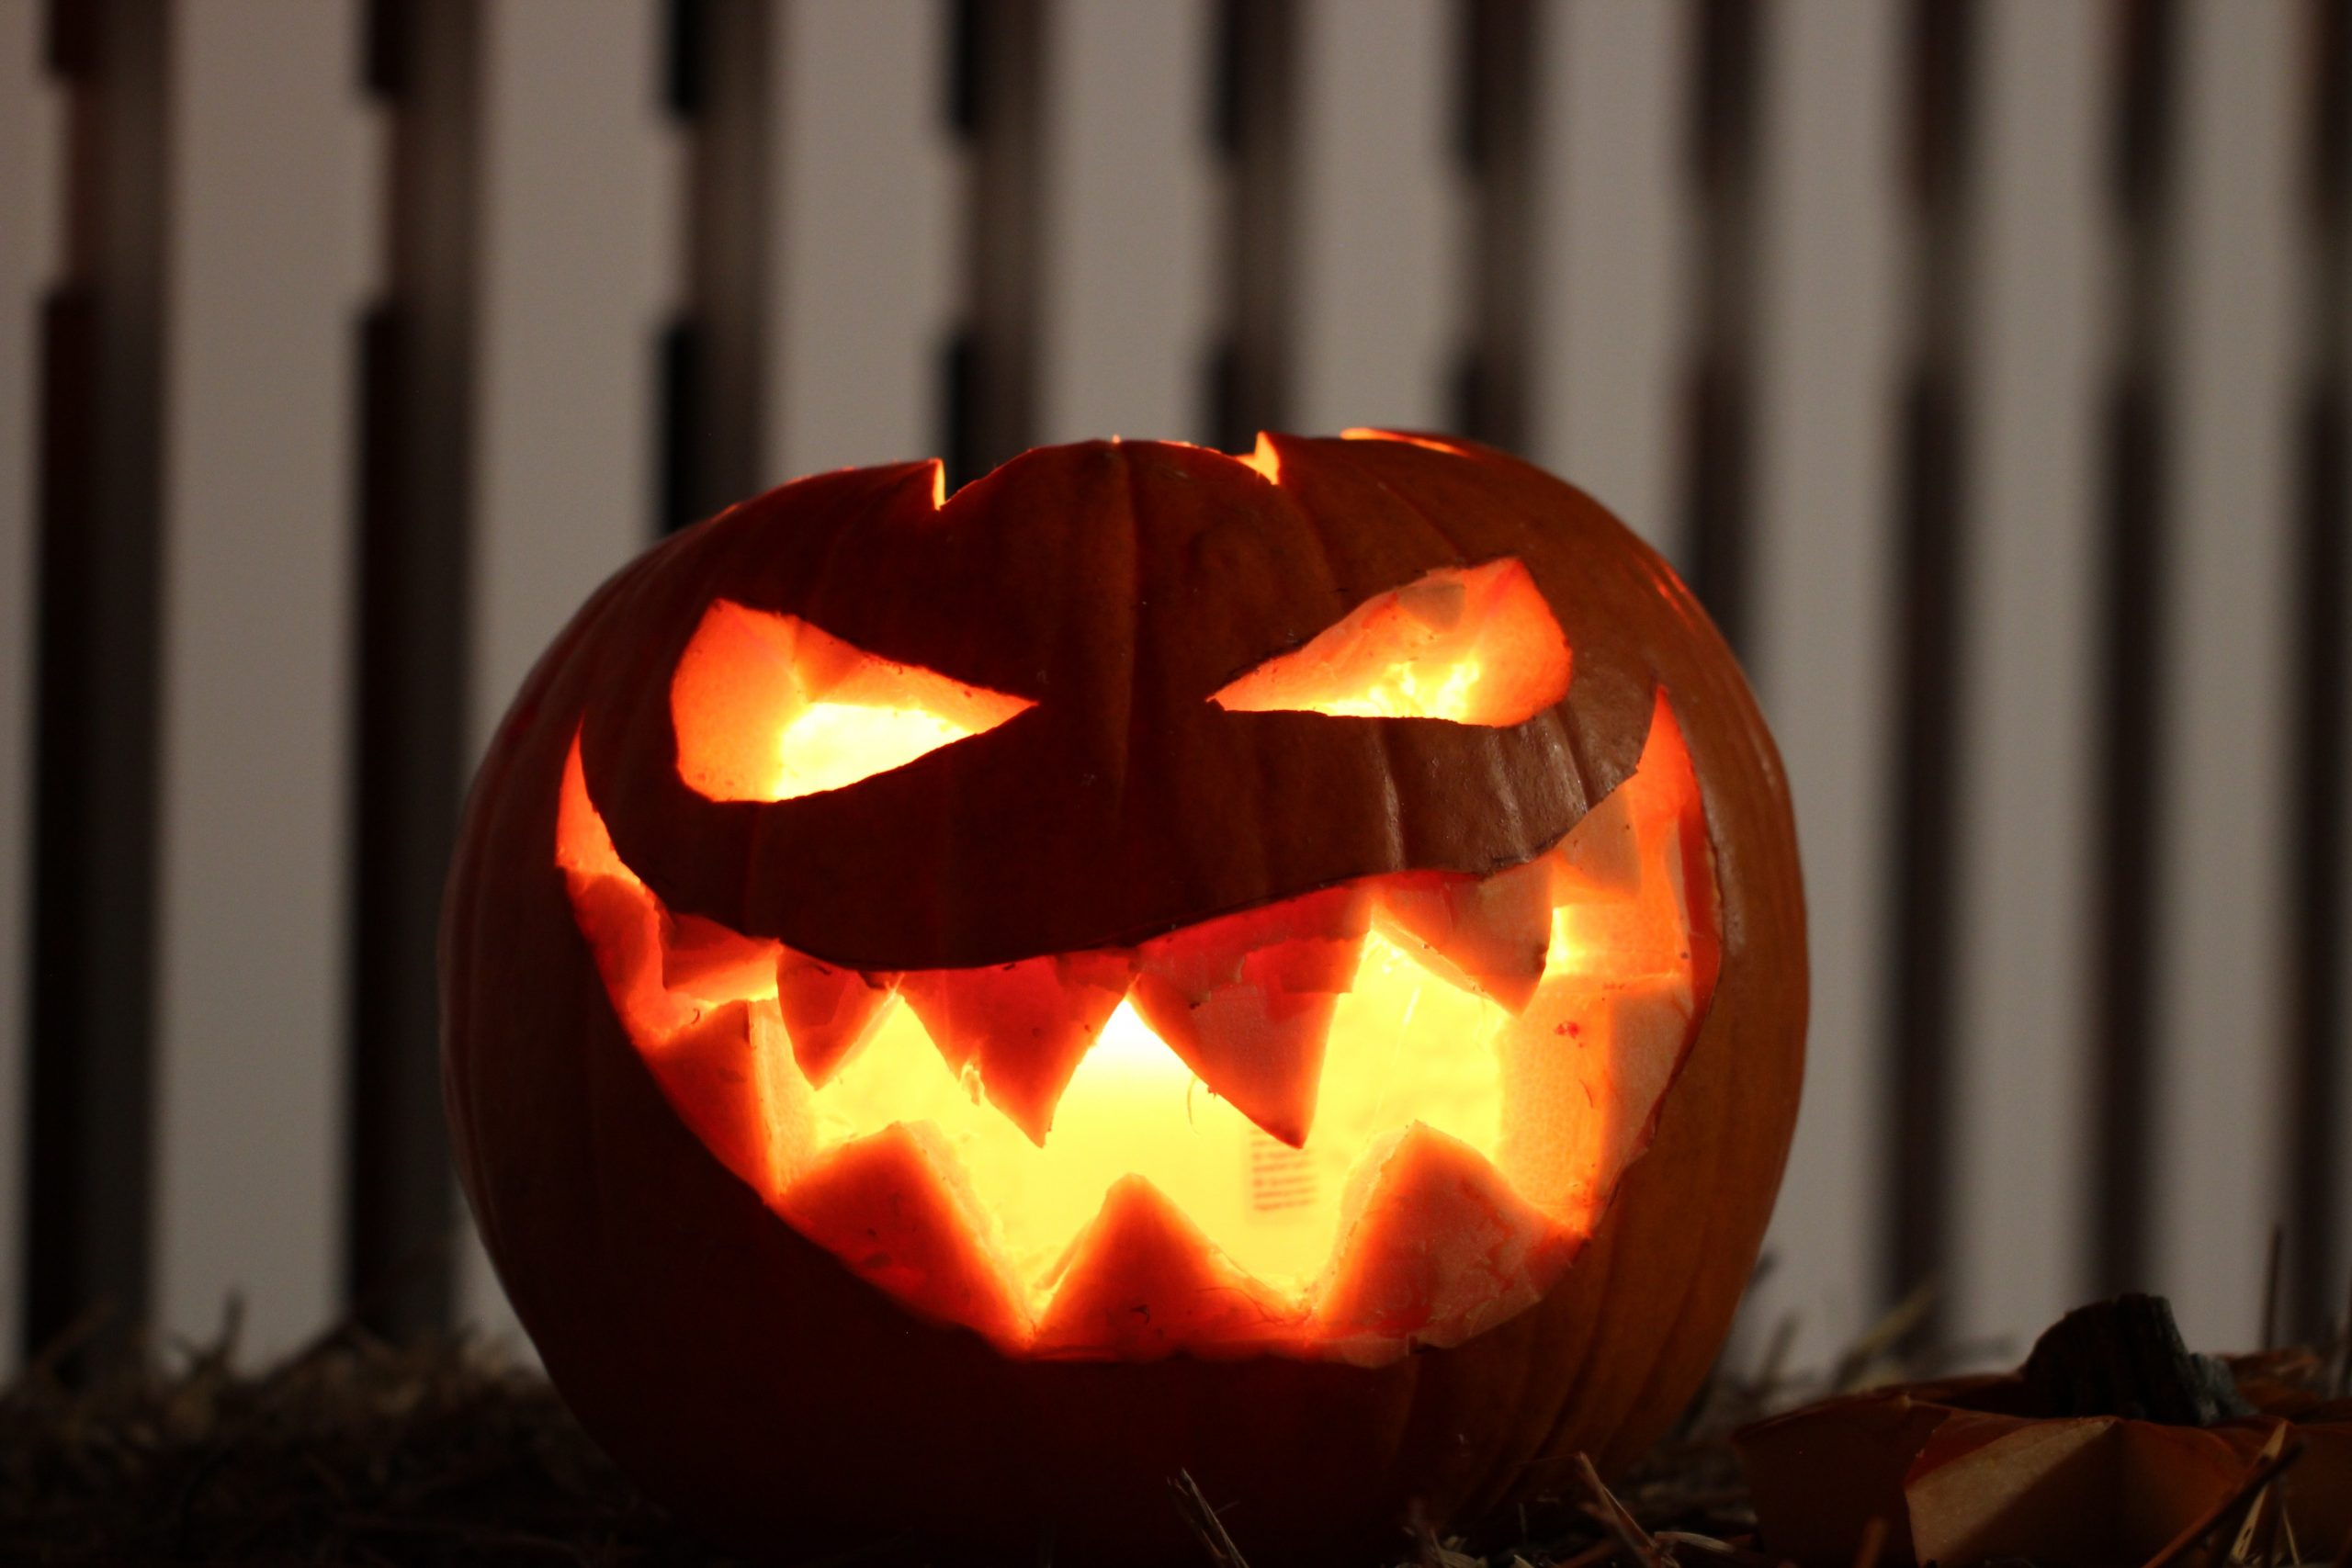 Carved Jack-O-Lantern smiling with candle inside sitting on the sidewalk in front of a white fence.